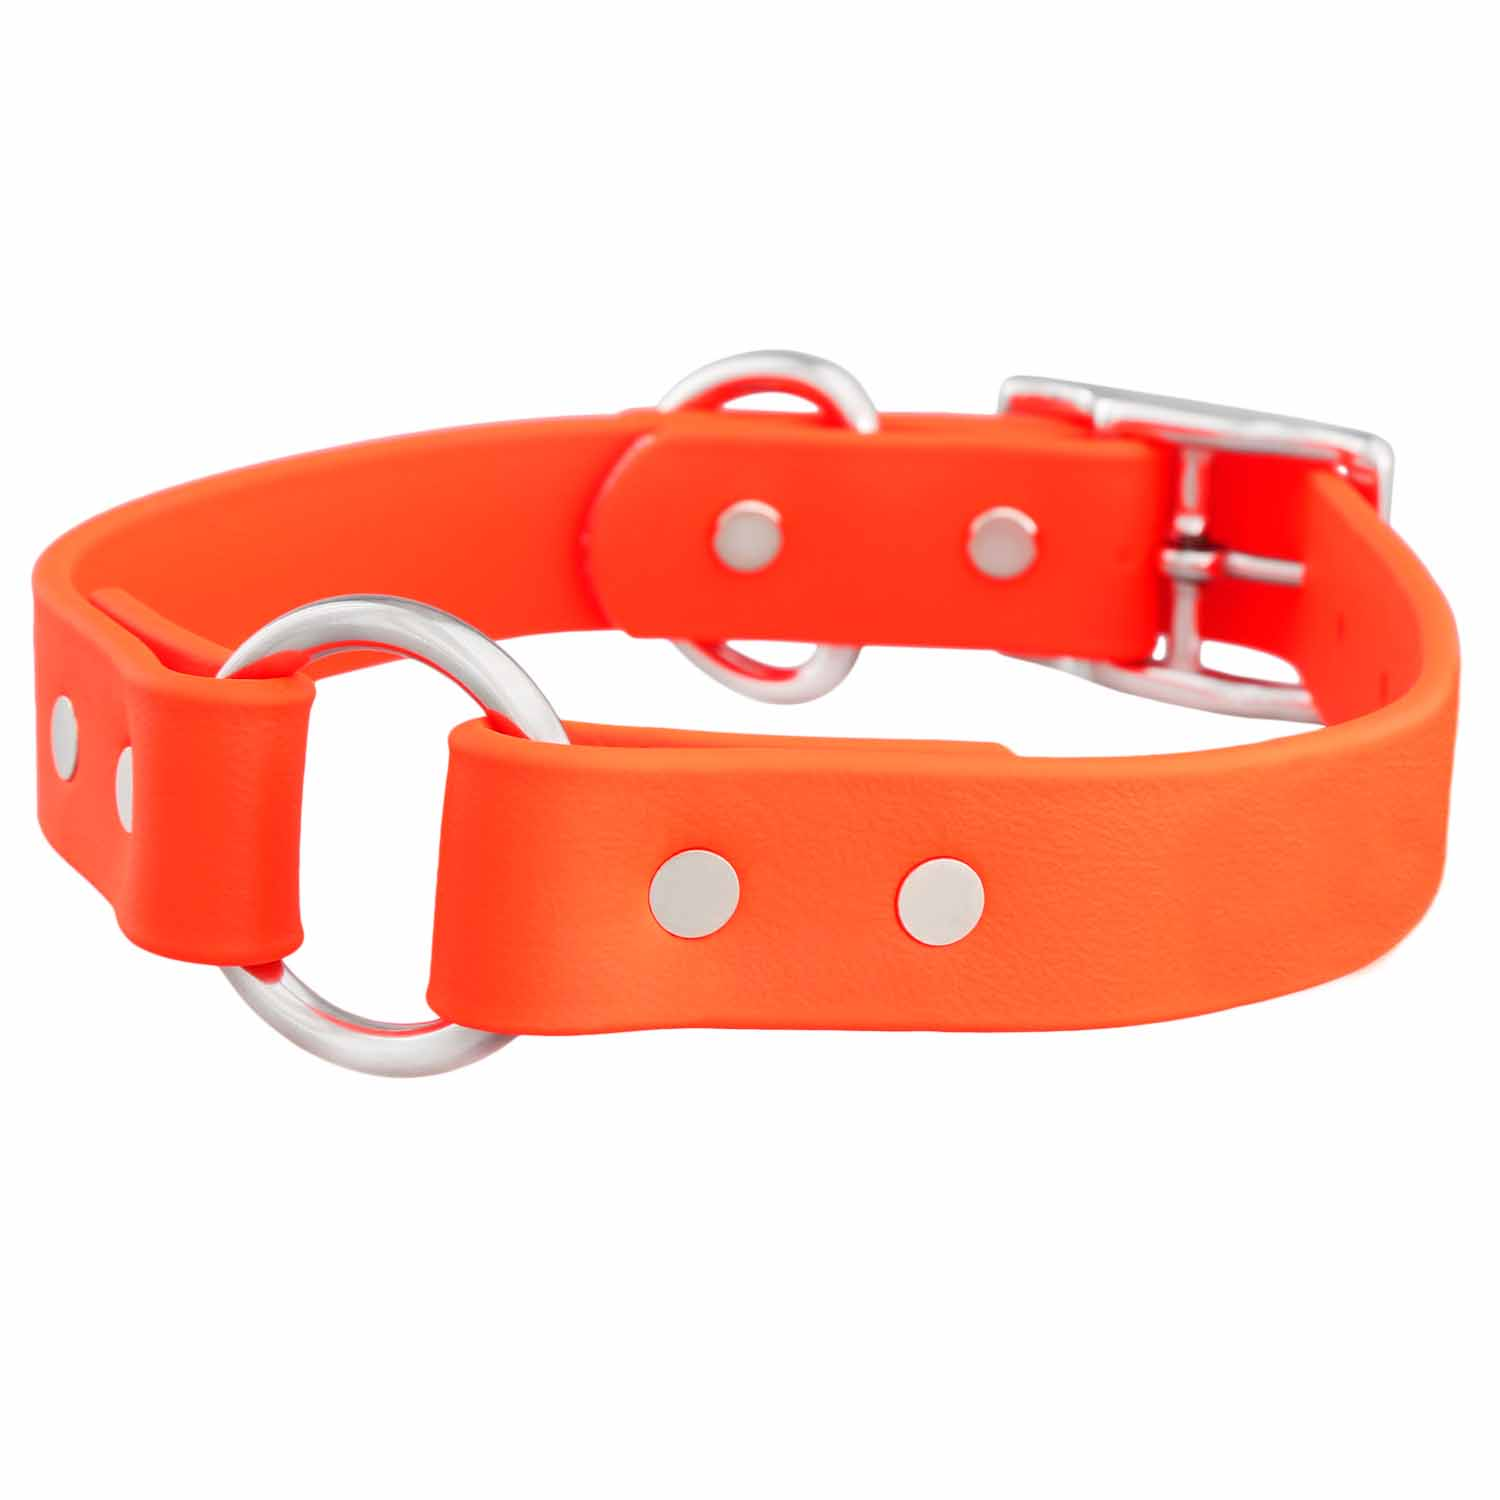 Waterproof Safety Dog Collar - Orange